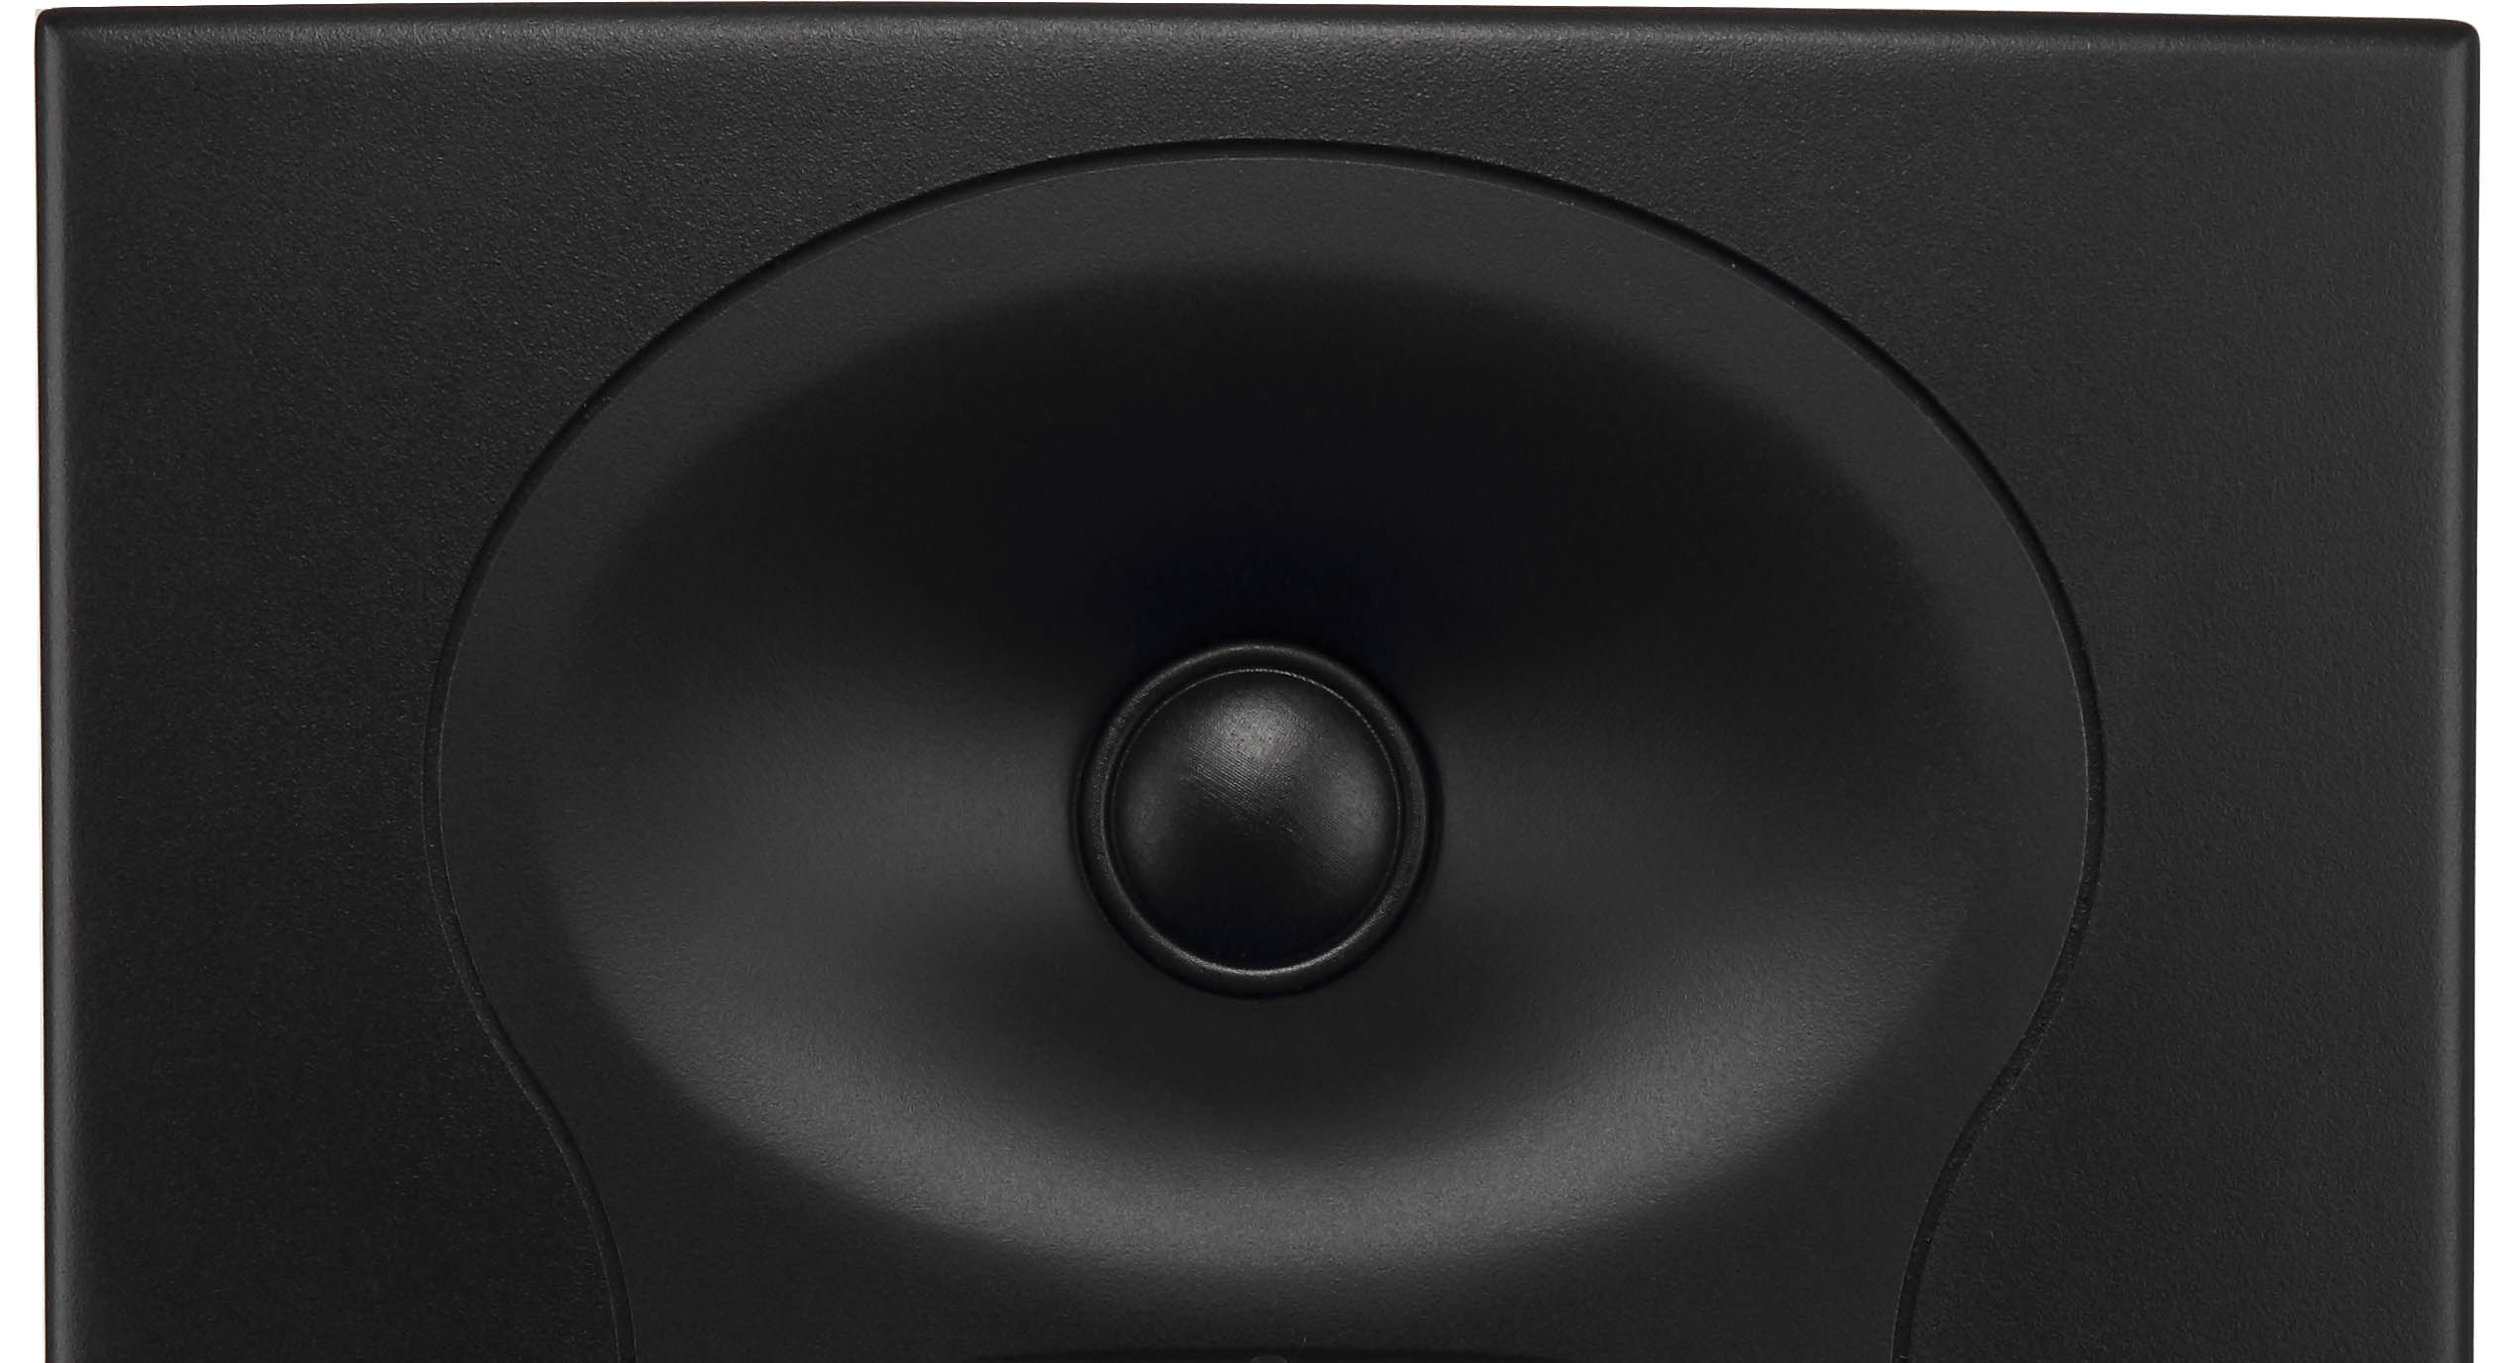 3-D Imaging Waveguide - The waveguide on Project Lone Pine monitors allows you to hear spatial details and a soundstage that is wider, taller, and deeper than the space between the speakers themselves.Learn More